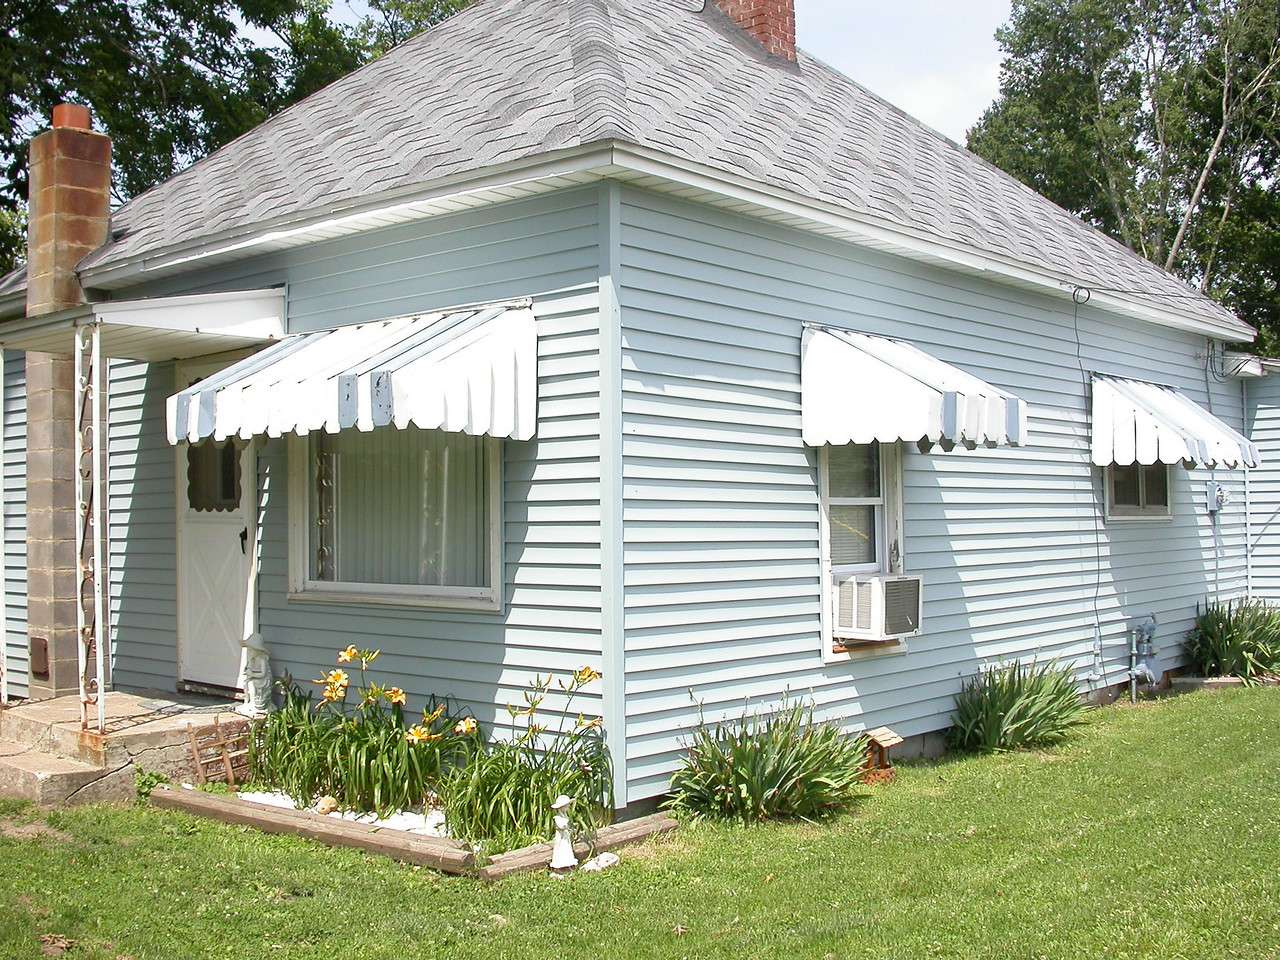 The former home of Alvey and Blanche Rukes.  Located at the north end of Depot Street in Rosedale, Indiana.  Photographed summer 2004.